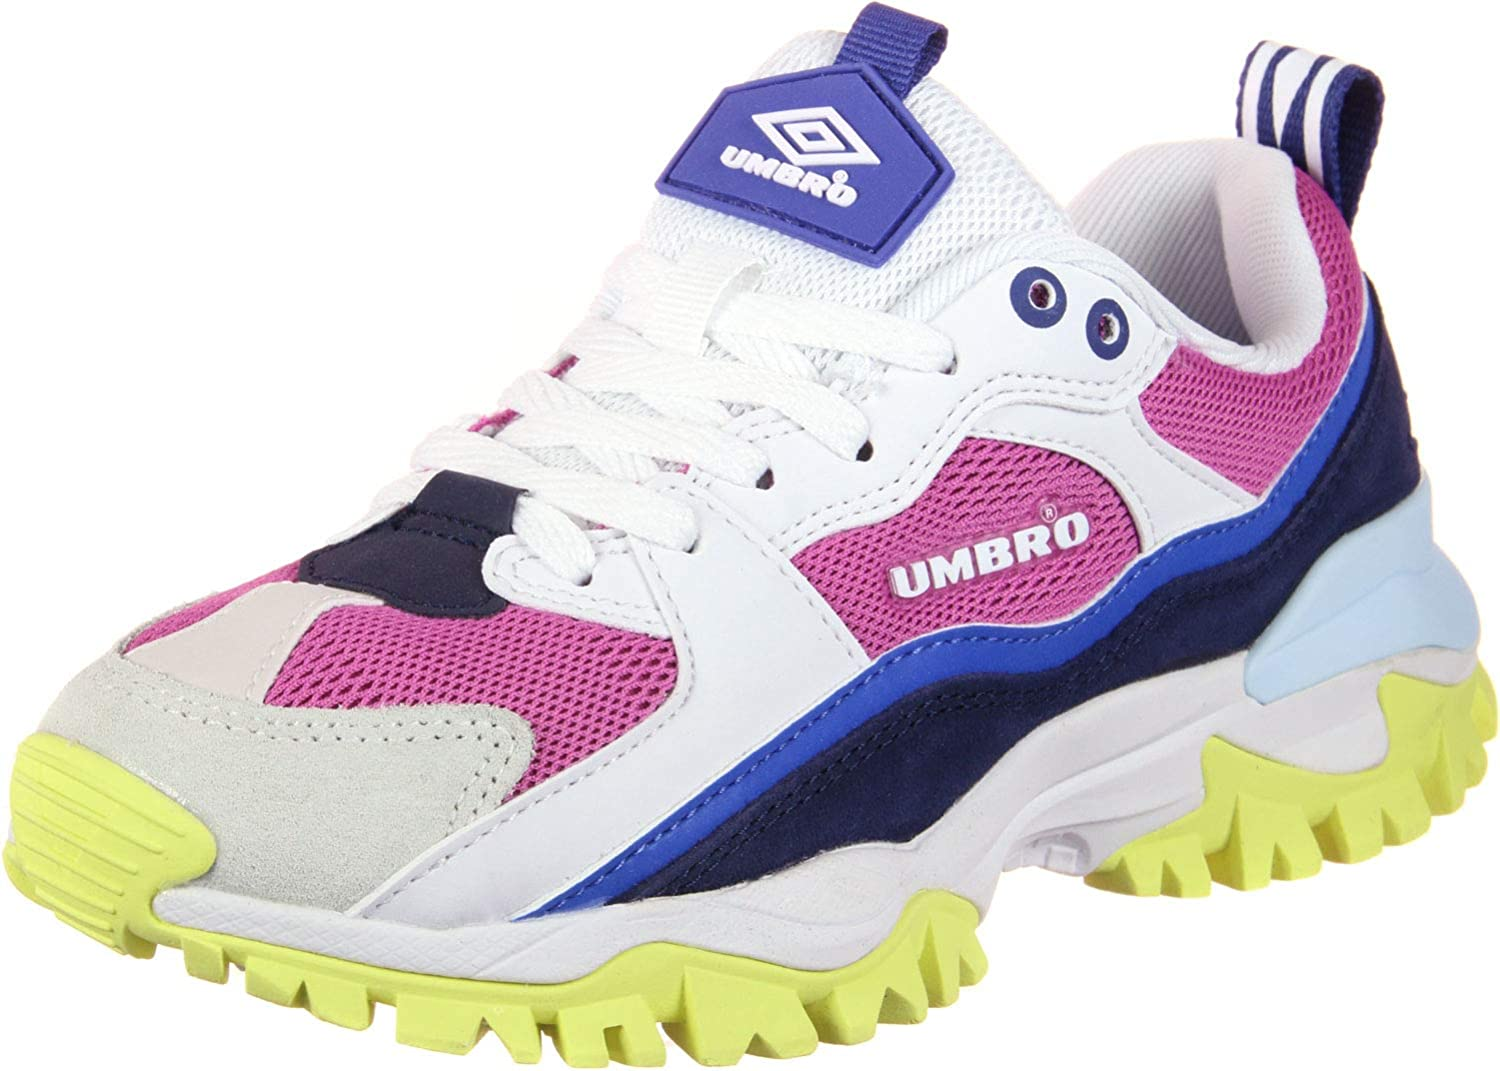 bumpy umbro shoes